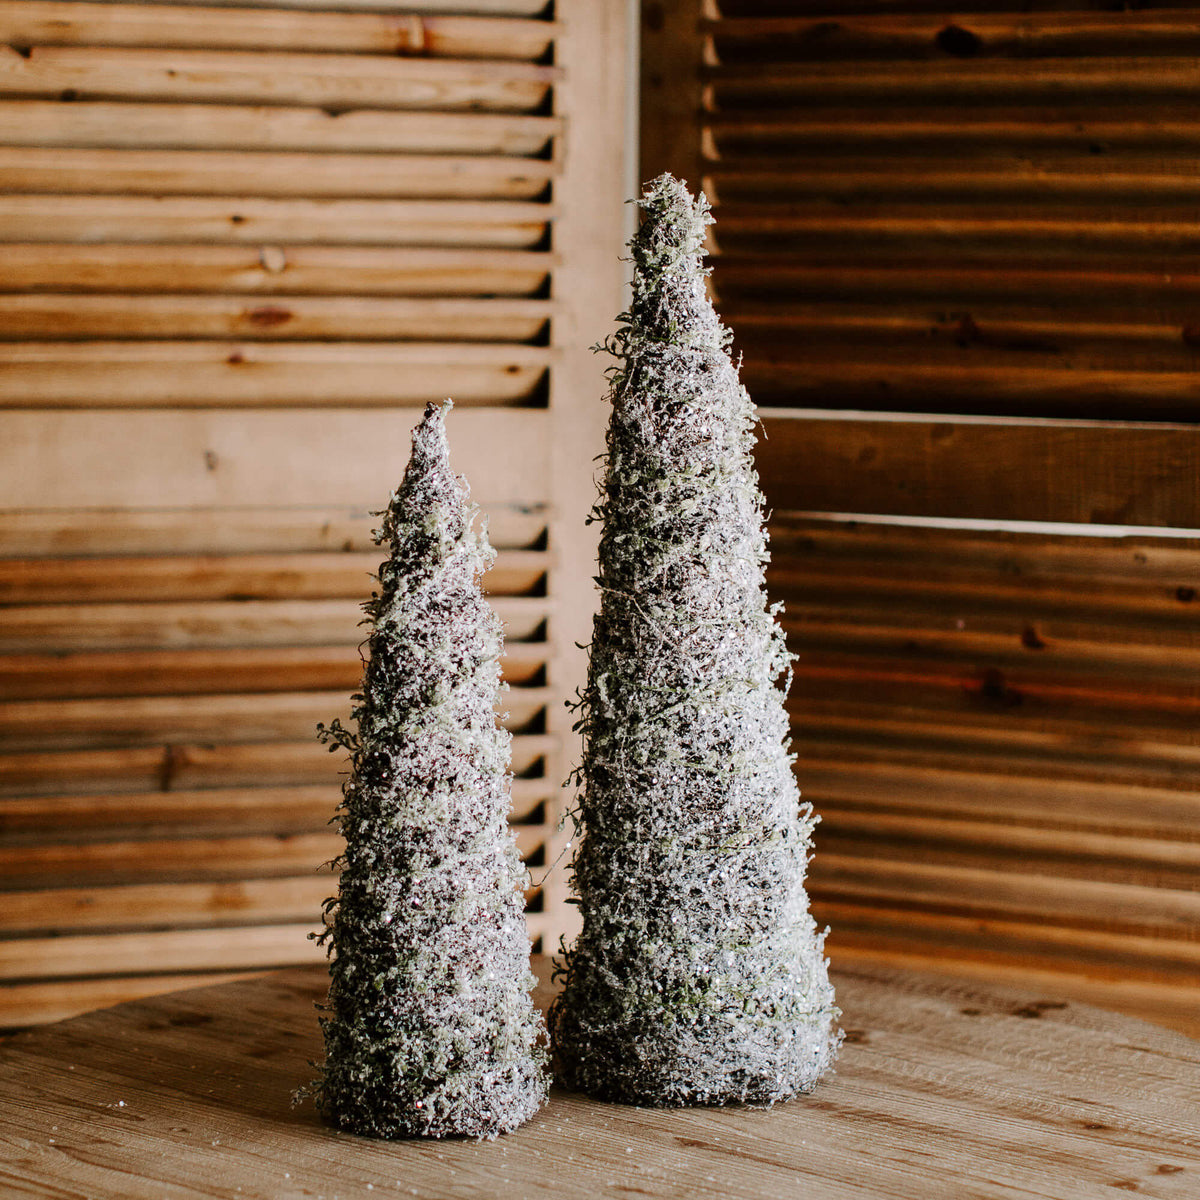 Cone shaped trees wrapped in faux icy vine